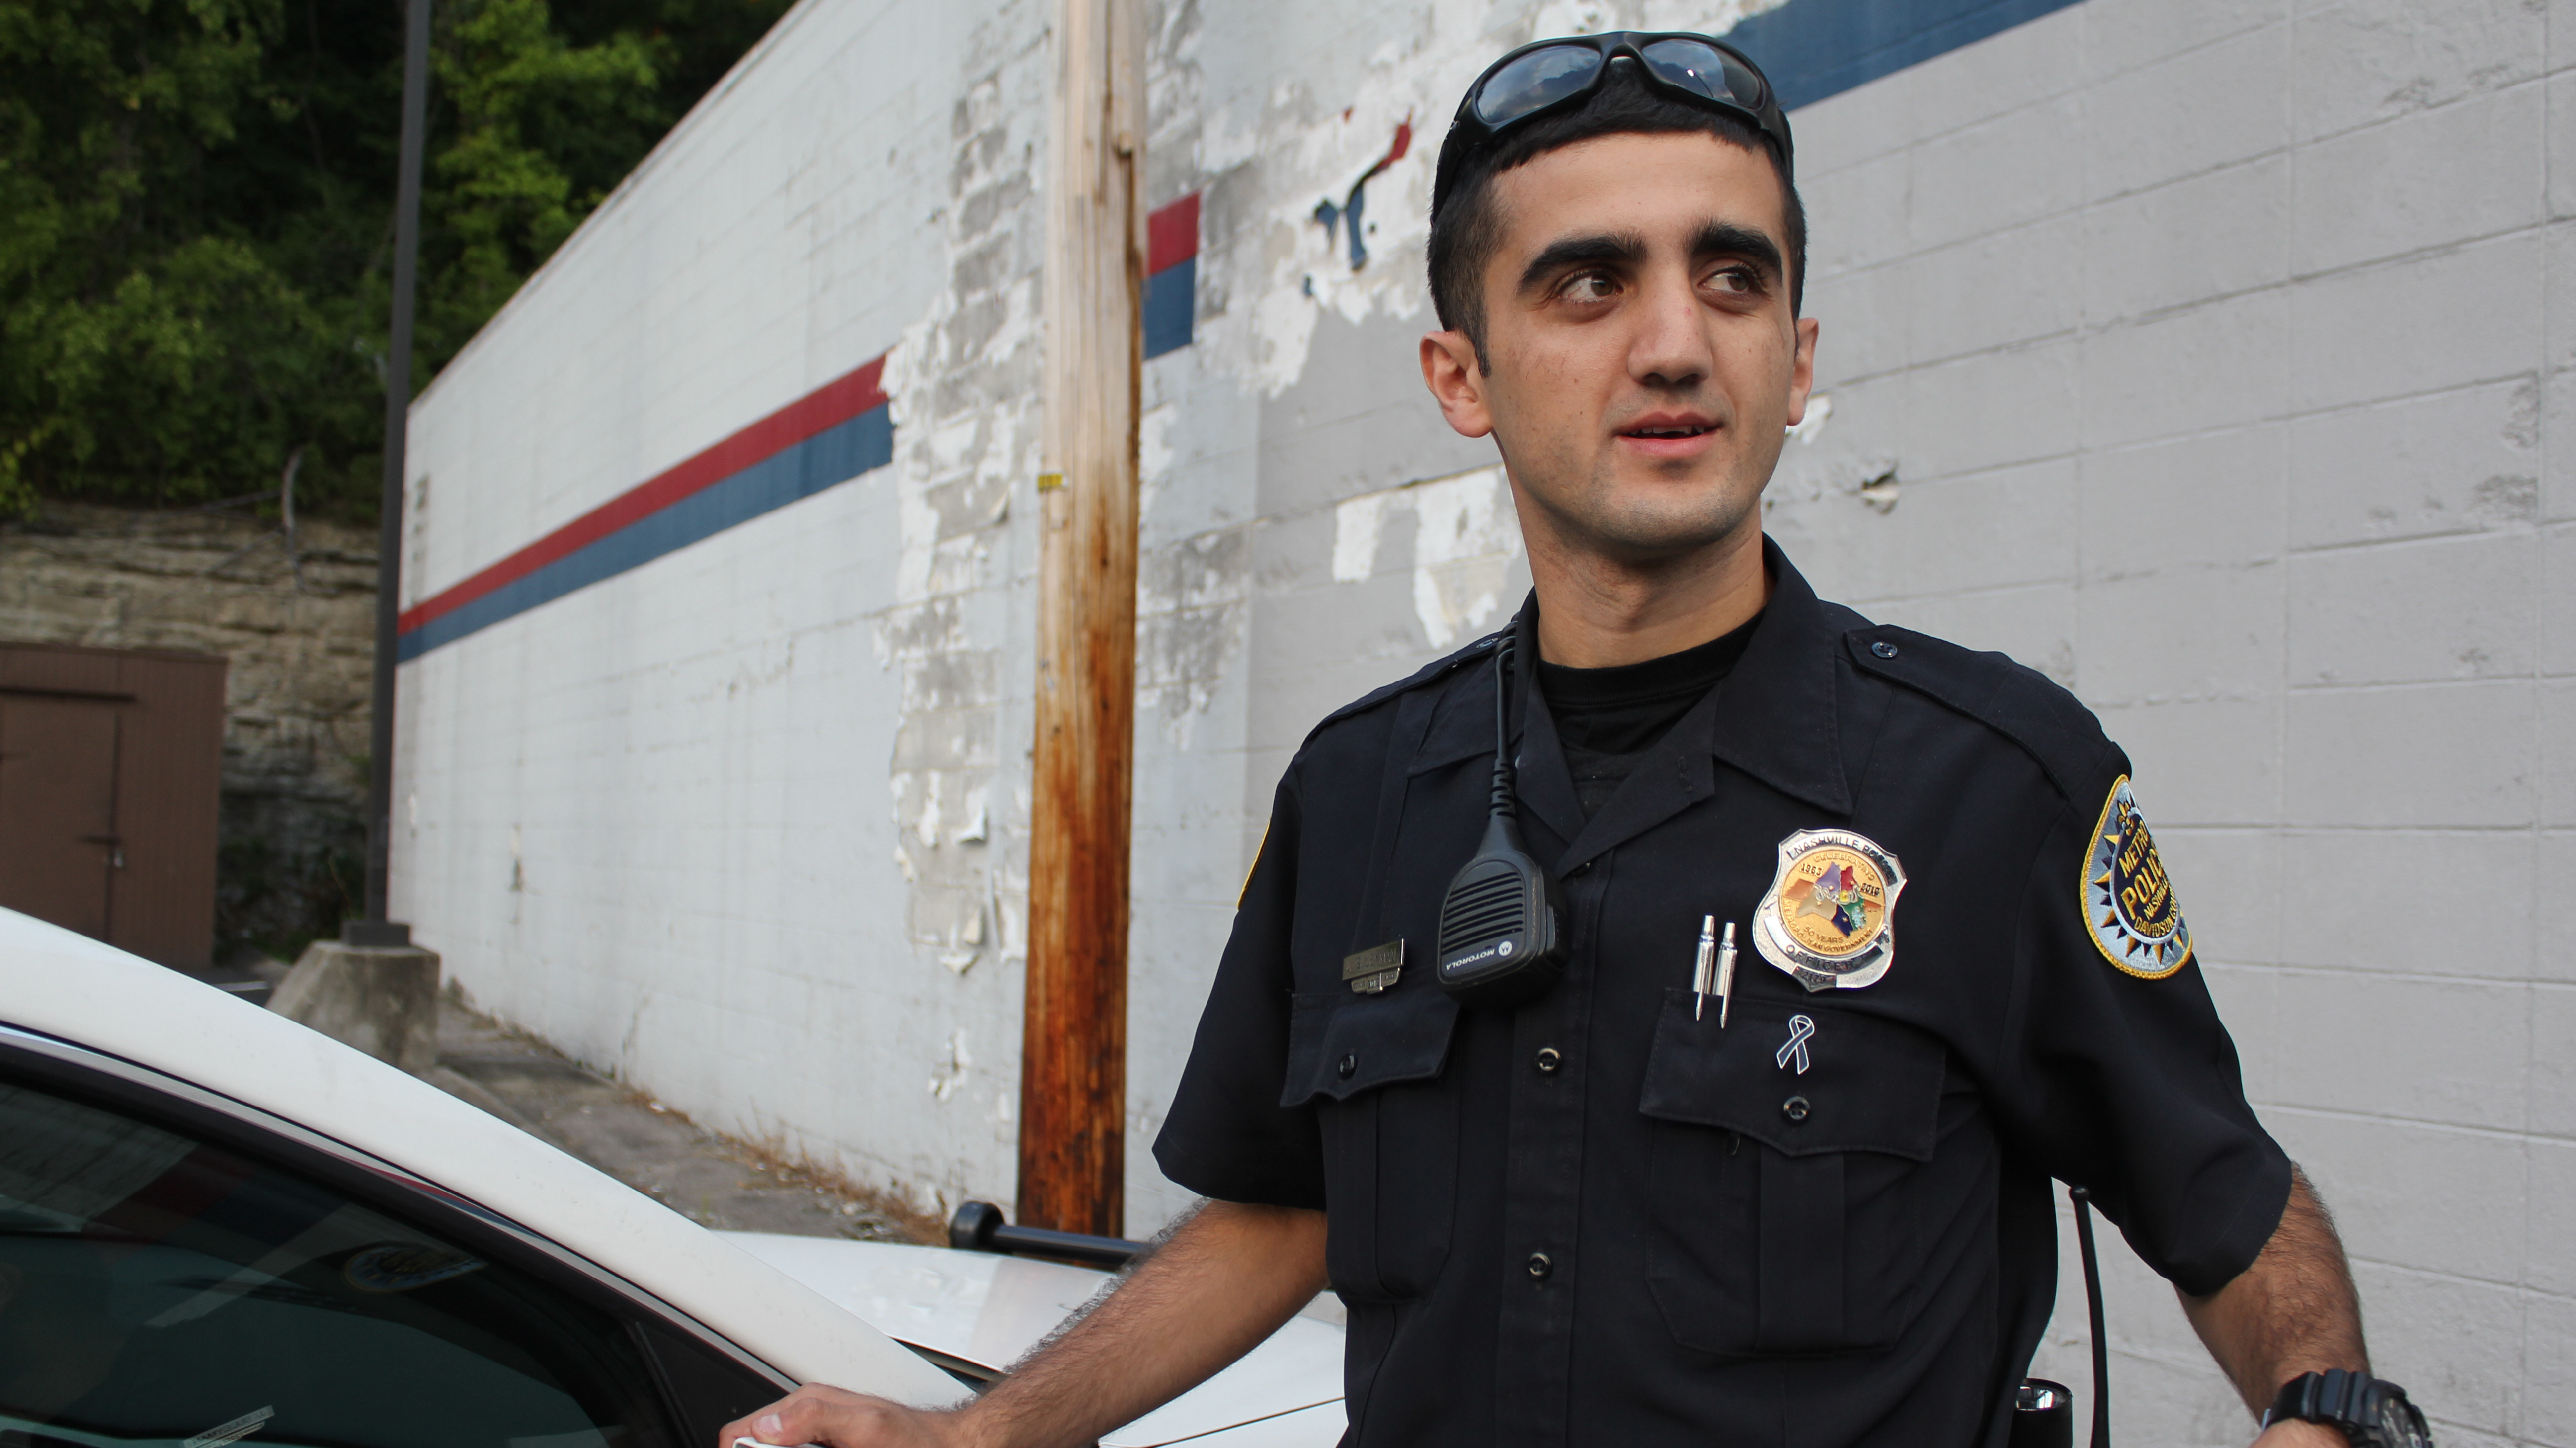 """Jiyayi Suleyman, 26, is Nashville's first Kurdish American police officer. """"I took this job to bridge the gap between not only the Kurdish community but the Muslim community with the police department,"""" Suleyman says. """"I wanted to be that one guy that mak"""